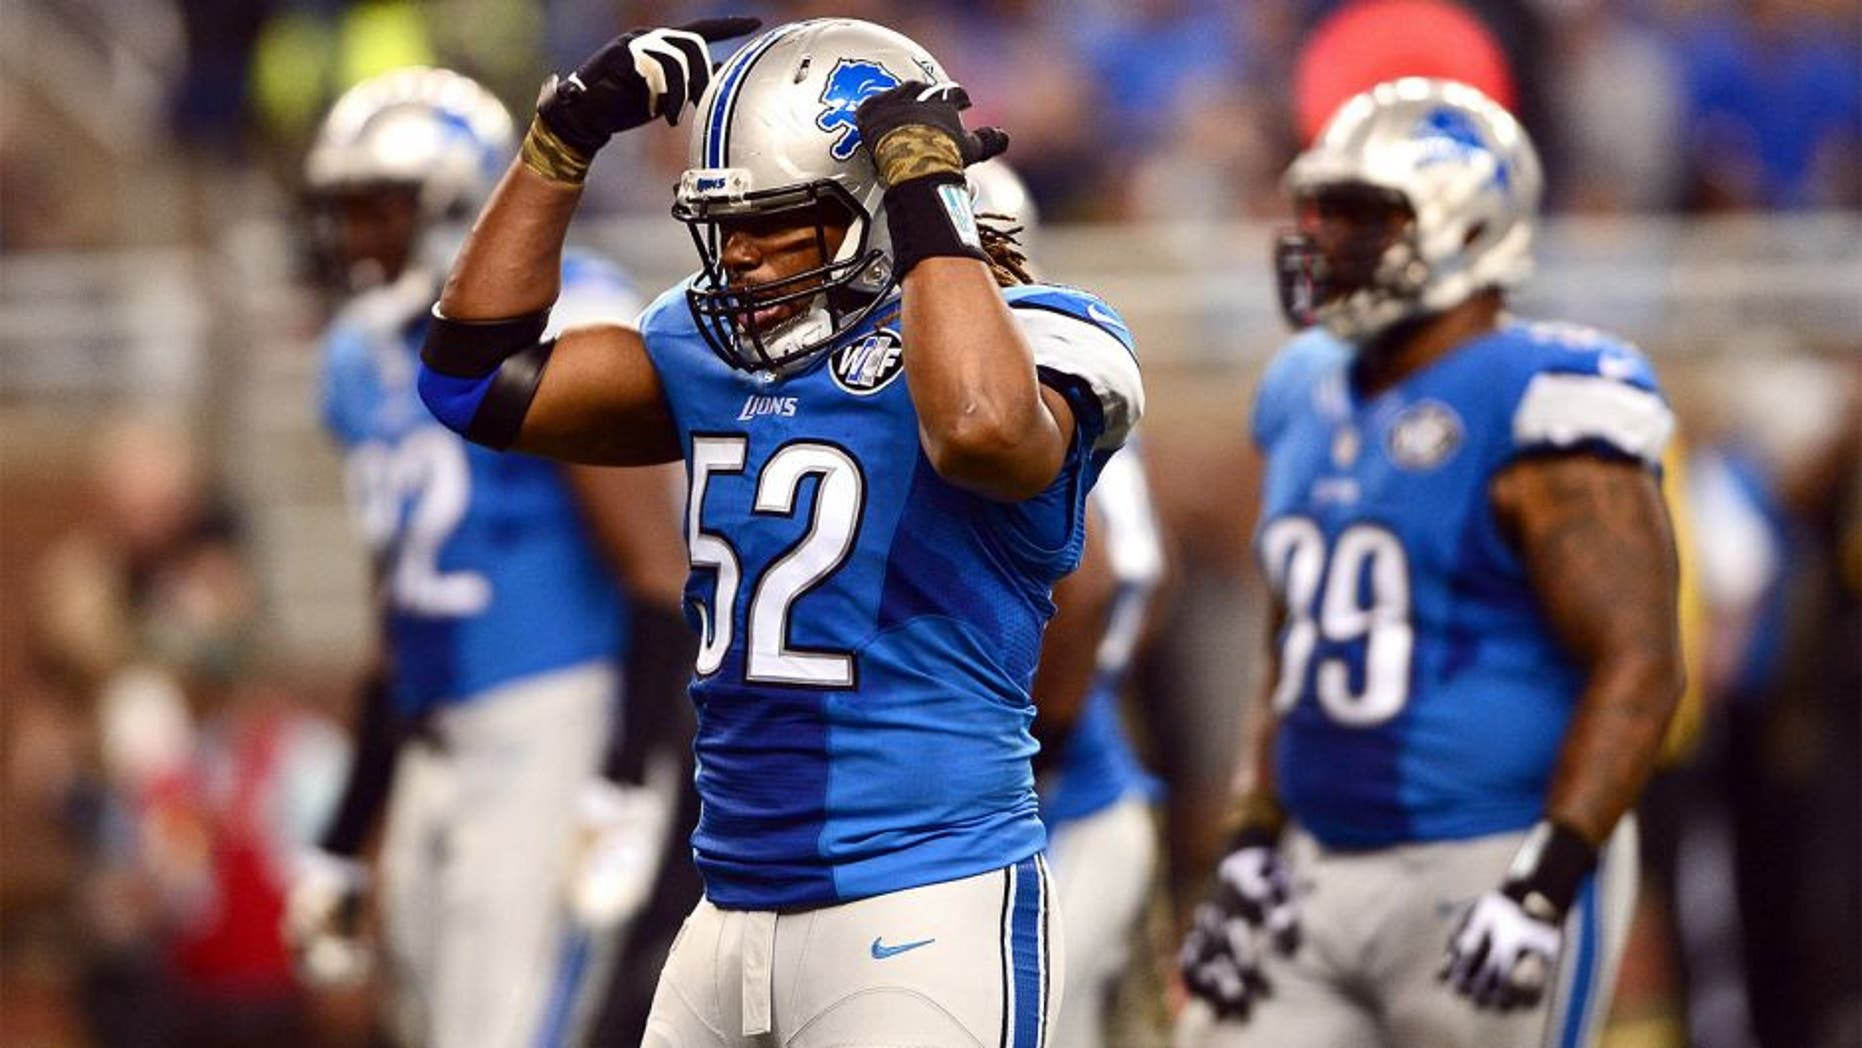 Nov 9, 2014; Detroit, MI, USA; Detroit Lions defensive end Darryl Tapp (52) against the Miami Dolphins at Ford Field. Mandatory Credit: Andrew Weber-USA TODAY Sports